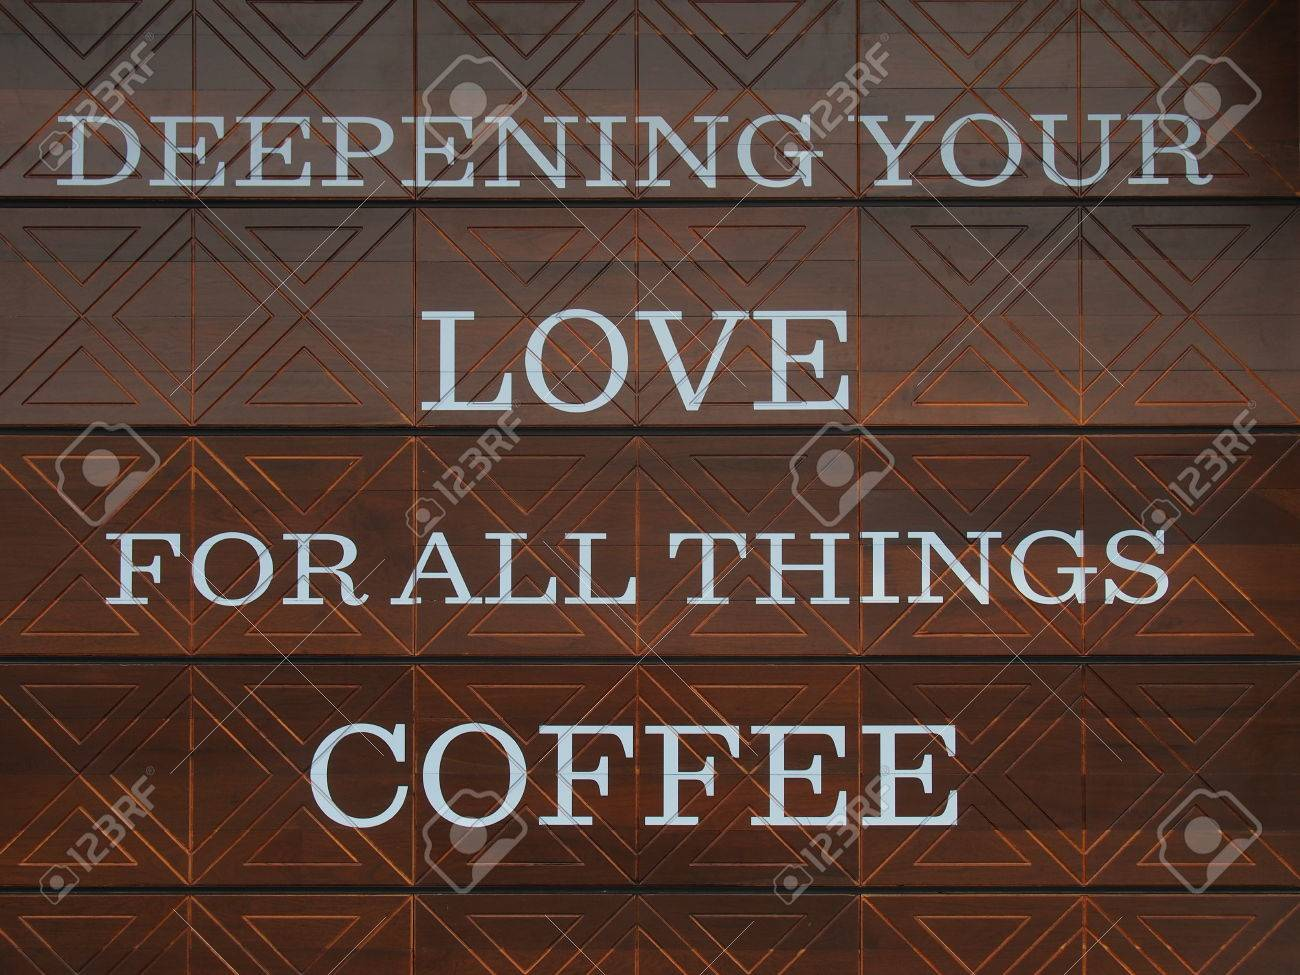 Deepening Your Love For All Things Coffee Quote On Wooden Wall Stock Photo Picture And Royalty Free Image Image 36271045